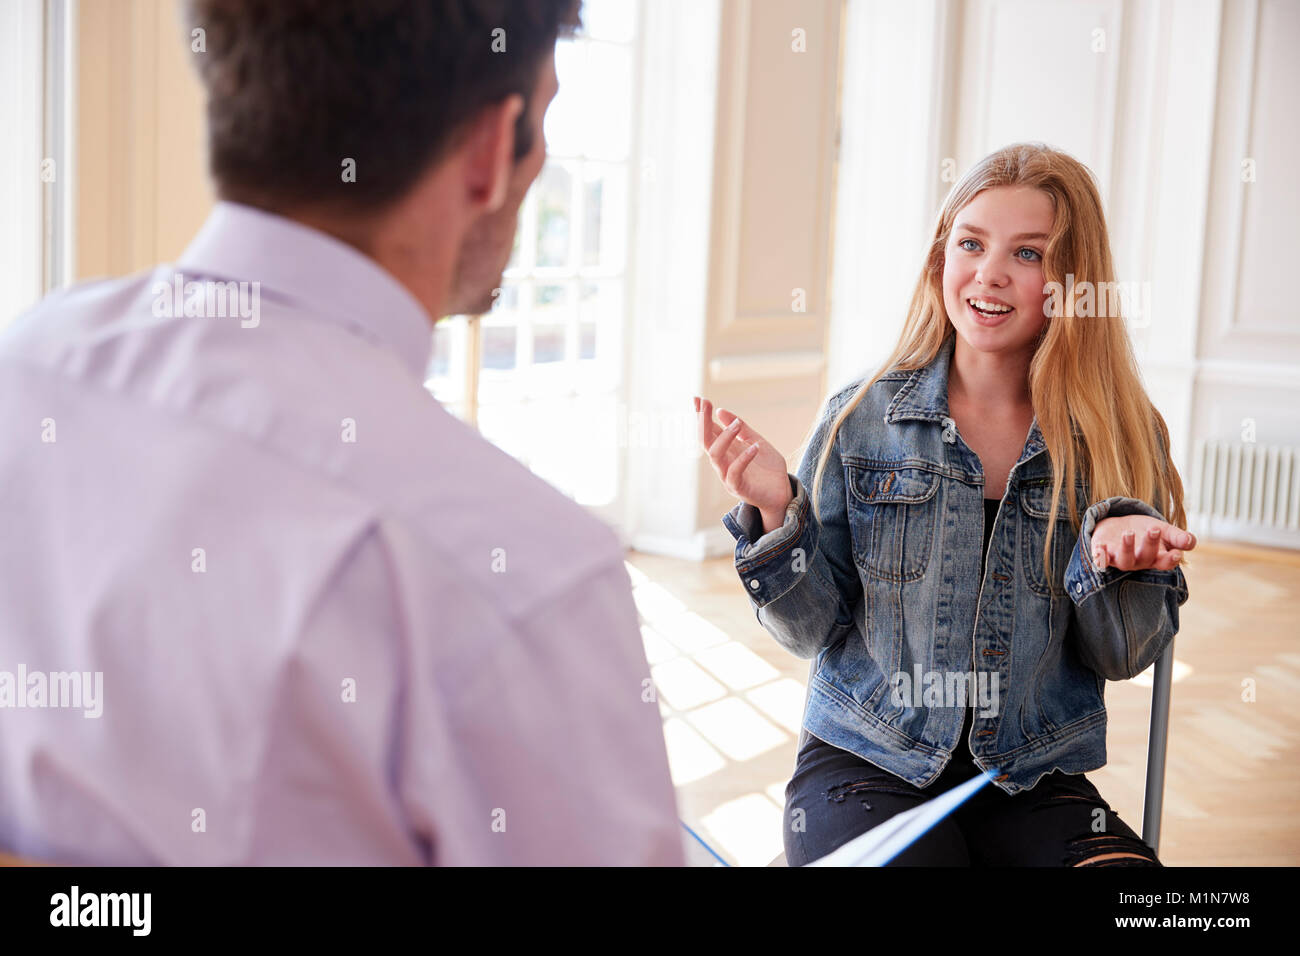 Female Teenage Student Having Discussion With Tutor - Stock Image